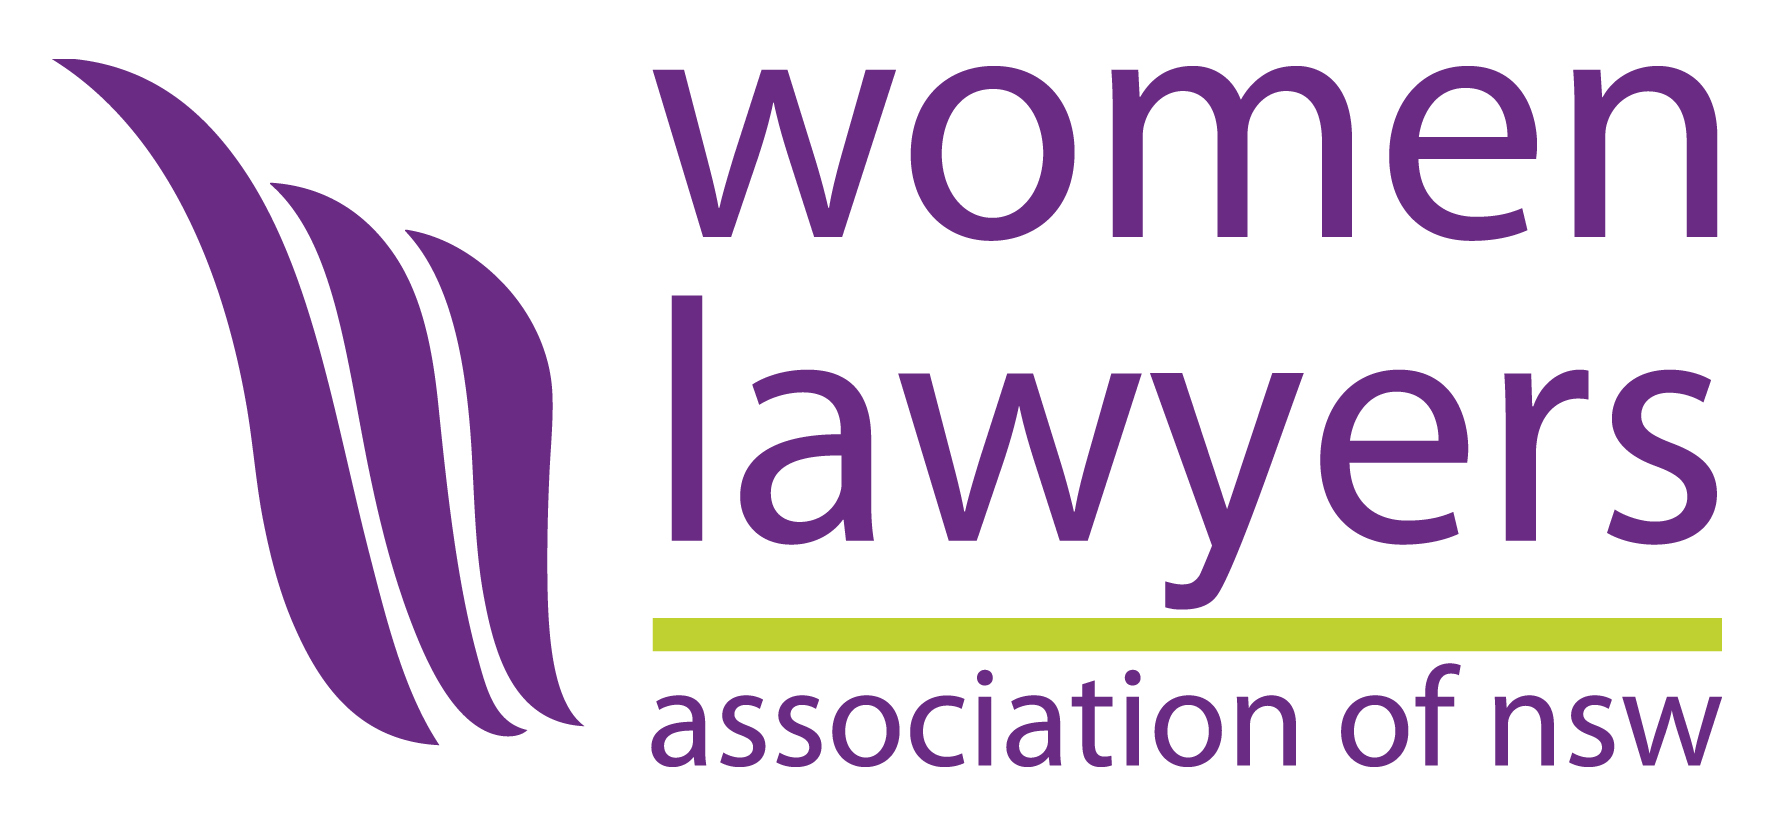 Women Lawyers Association of NSW